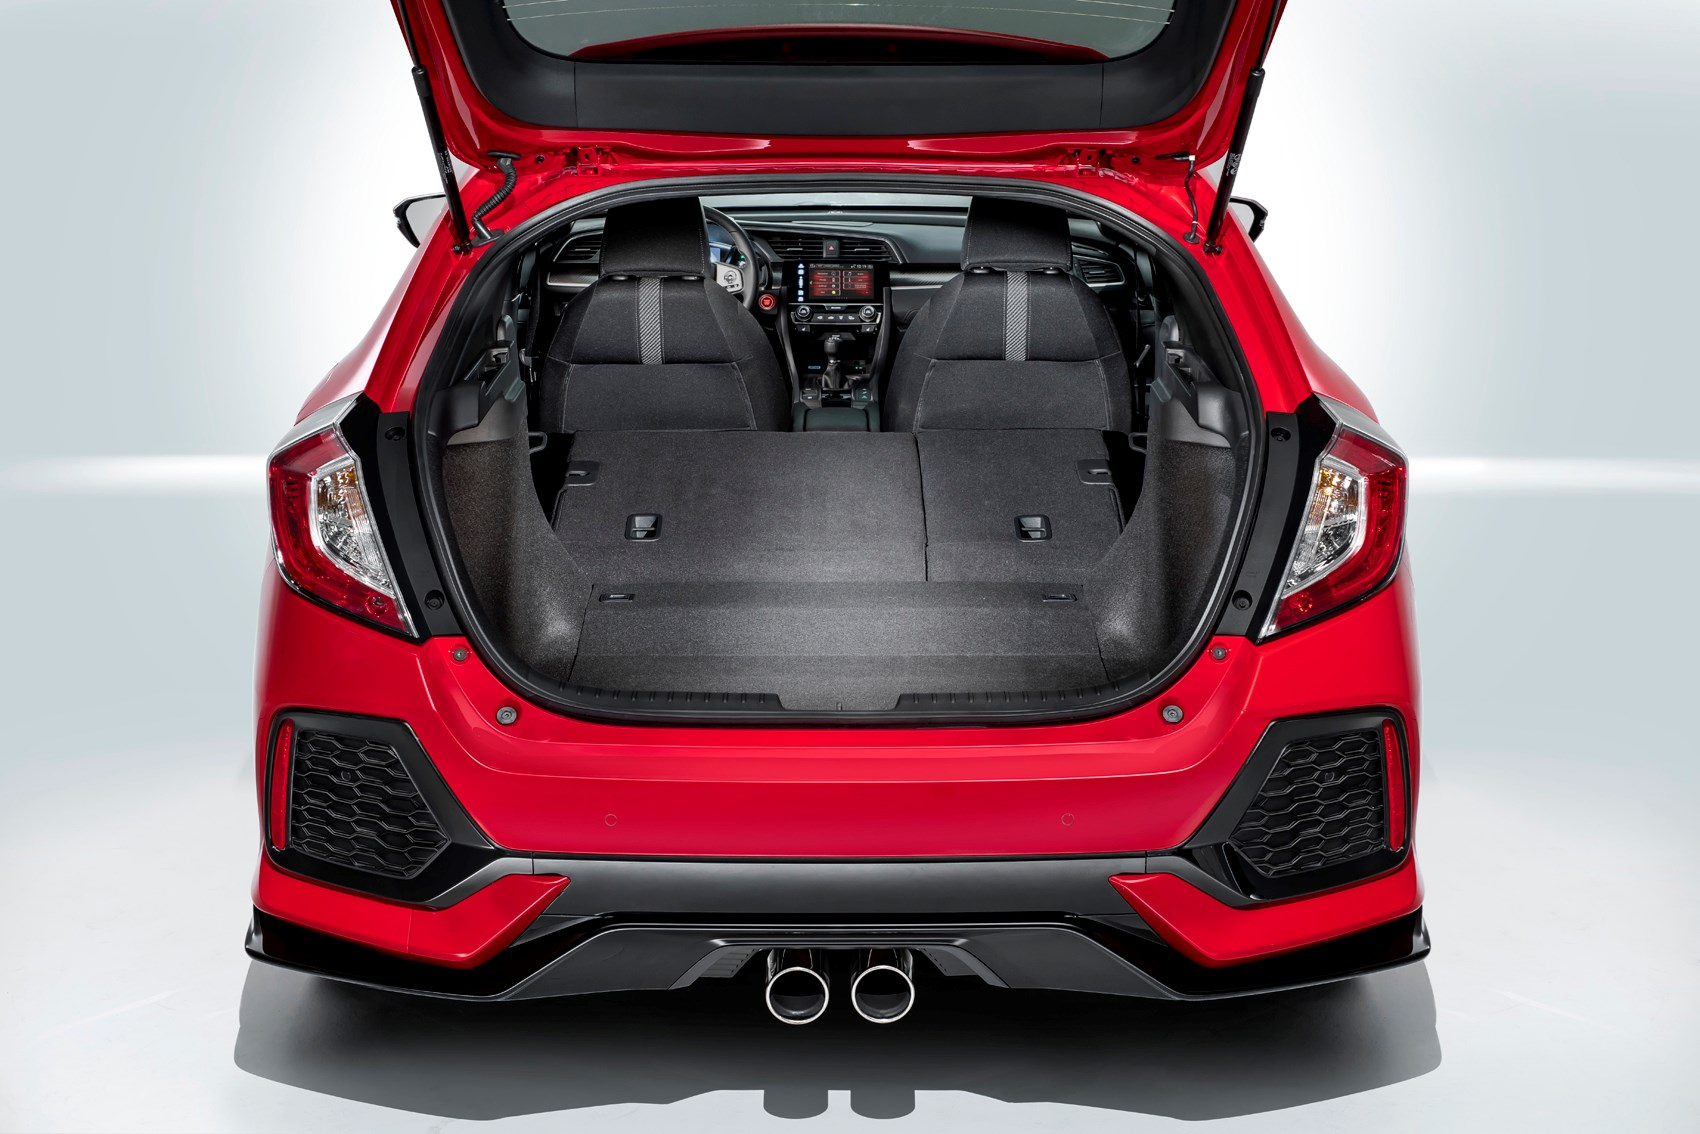 Honda Civic Hatchback 2017 Features Equipment And Accessories Jazz Rs Boot Load Space